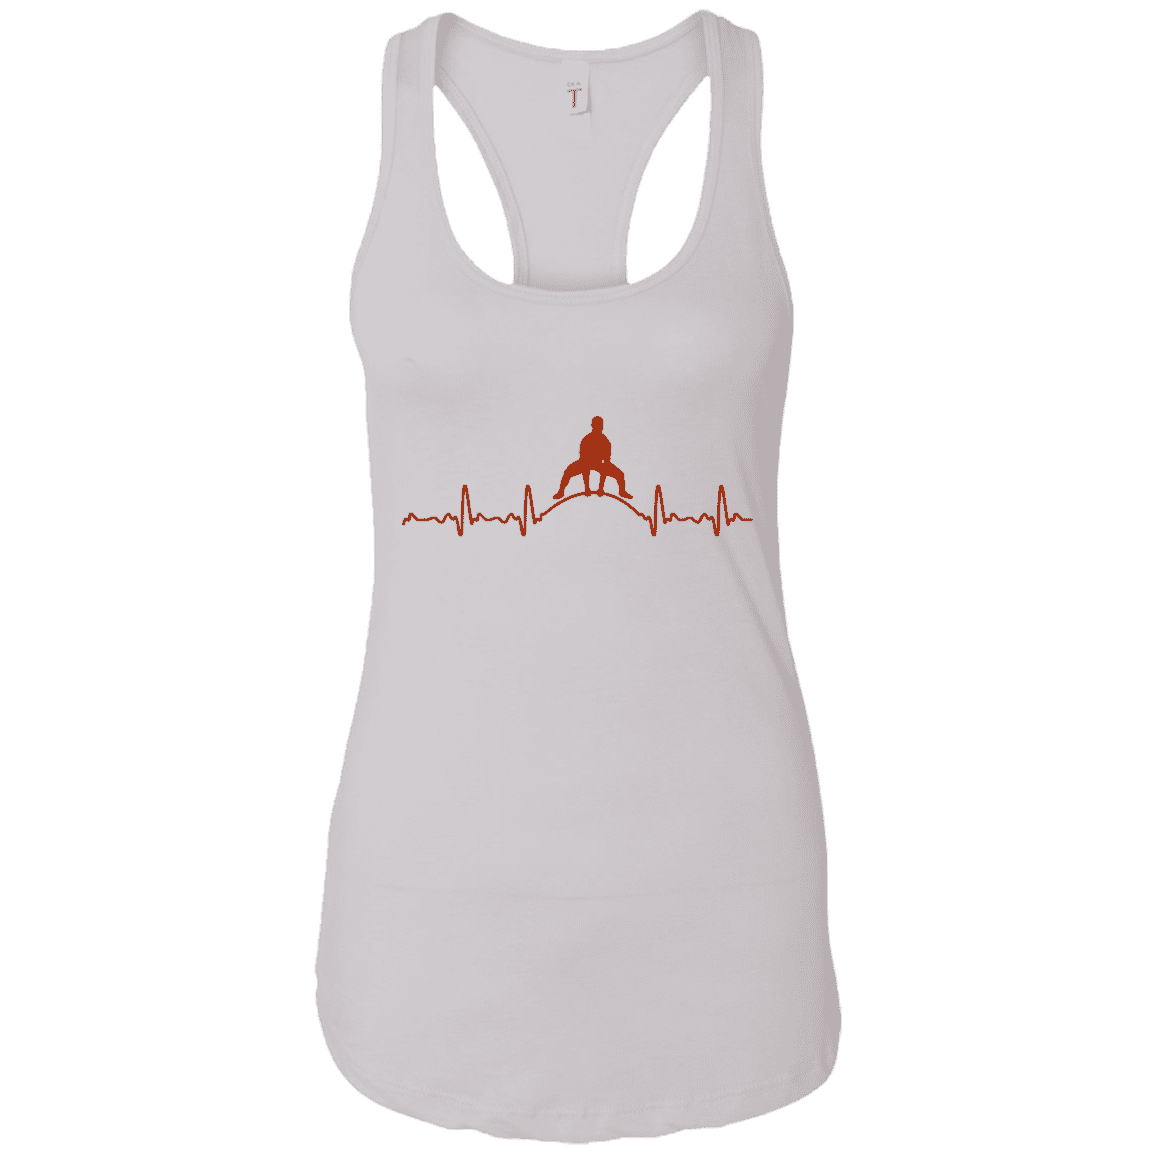 T-Shirts White / X-Small Heartbeat Racerback Tank